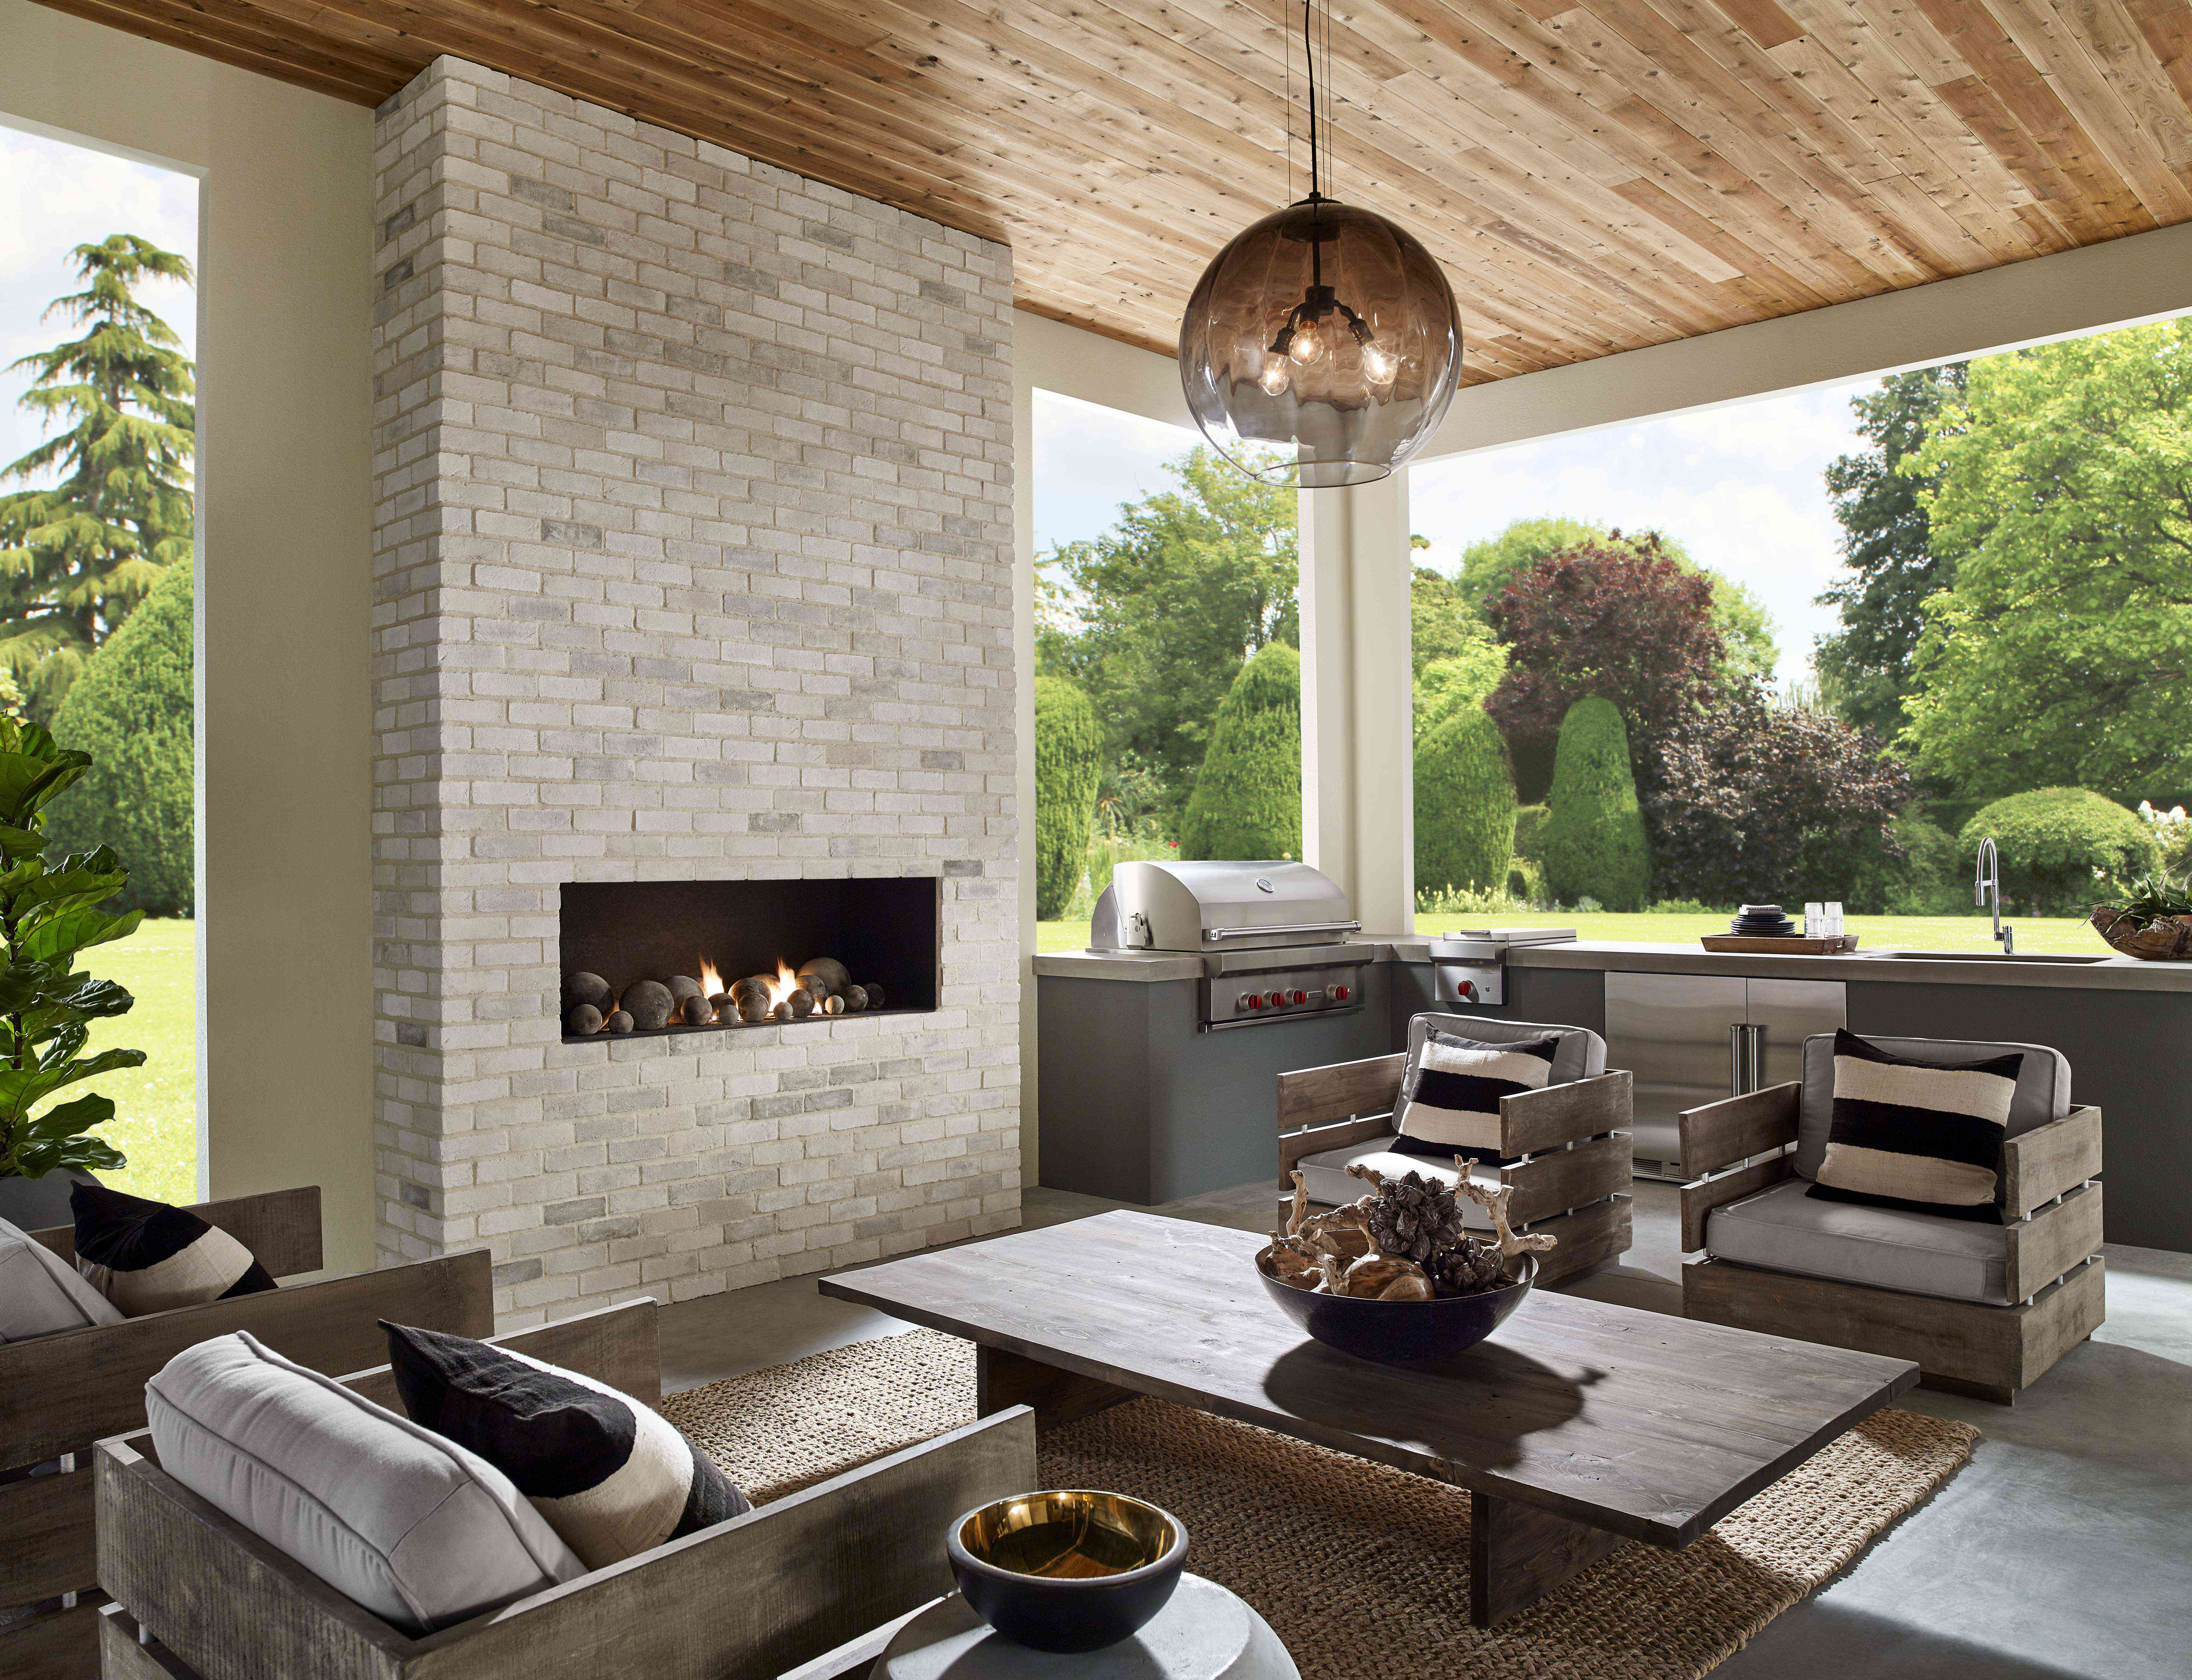 Brown-toned outdoor kitchen